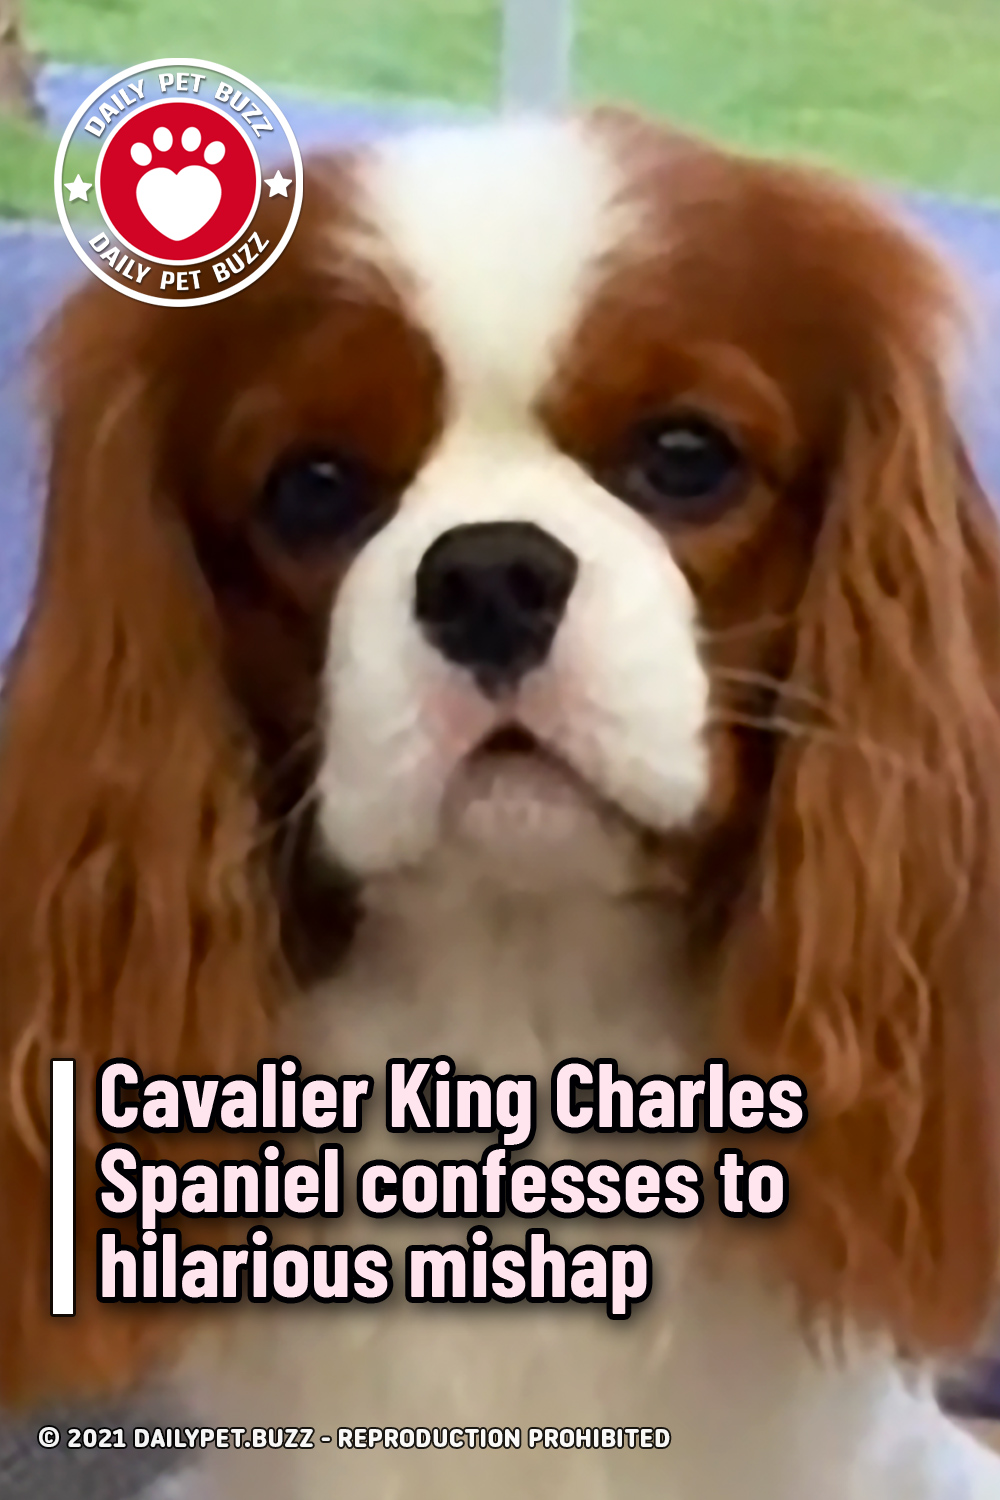 Cavalier King Charles Spaniel confesses to hilarious mishap